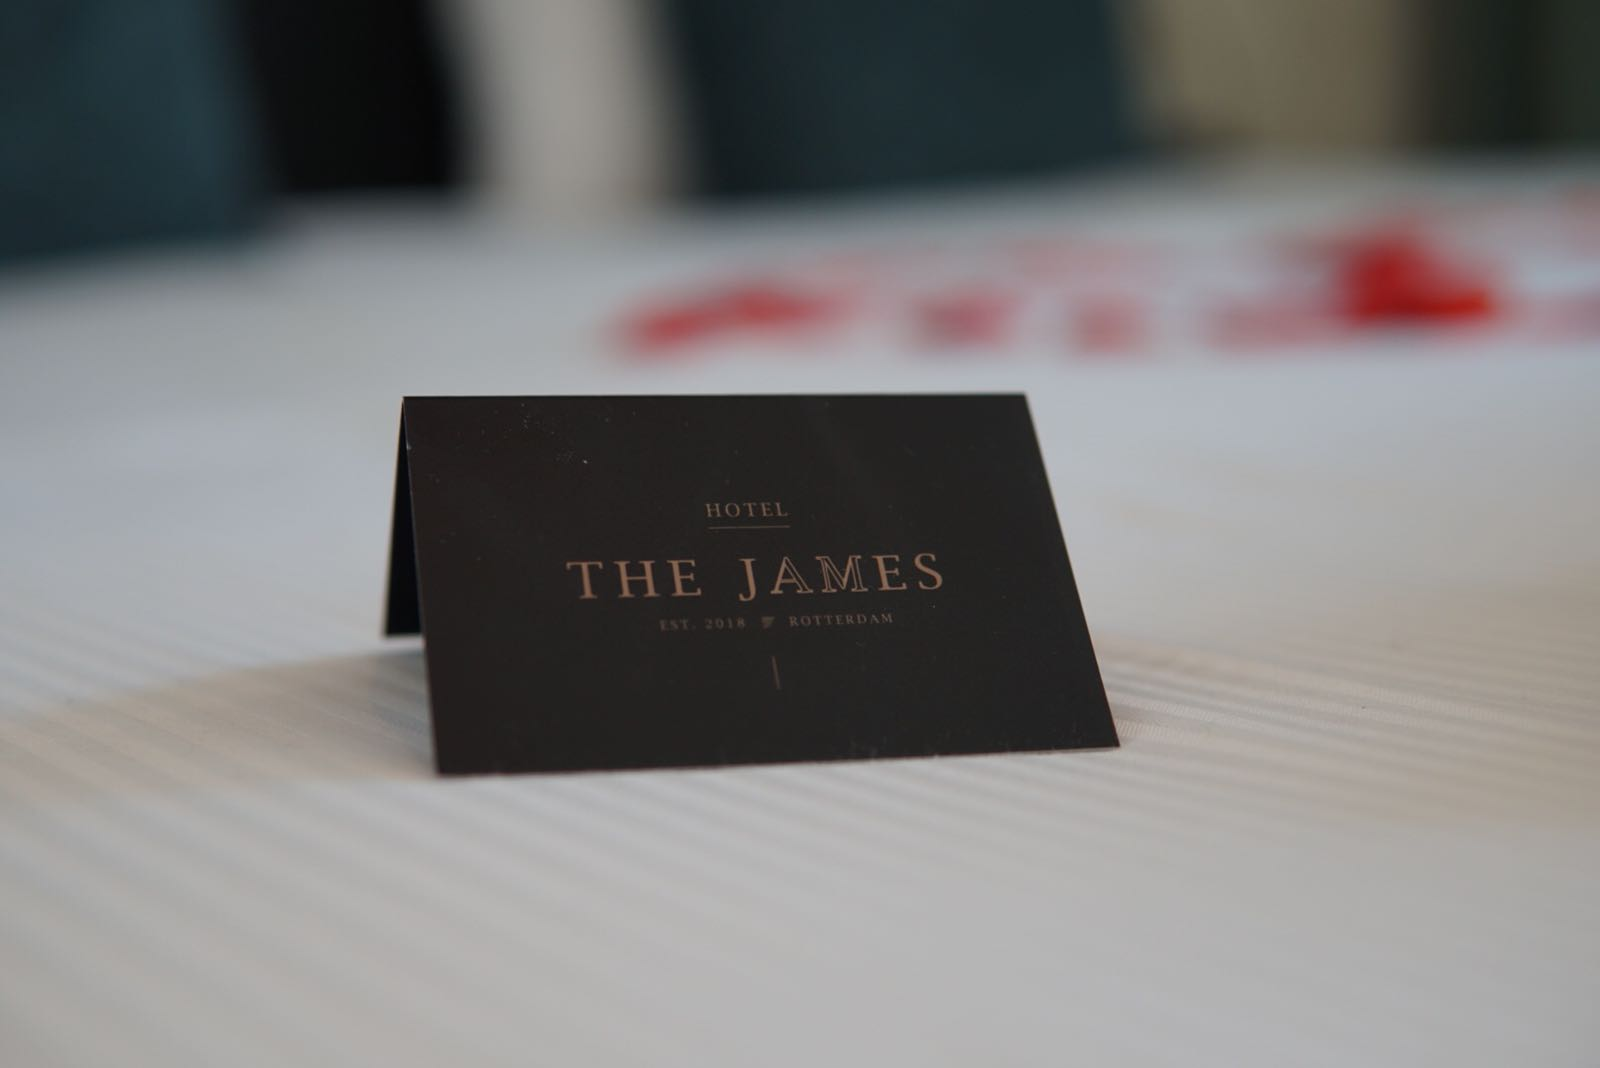 the james hotel, the james, rotterdam, hotel rotterdam, cynthia houben